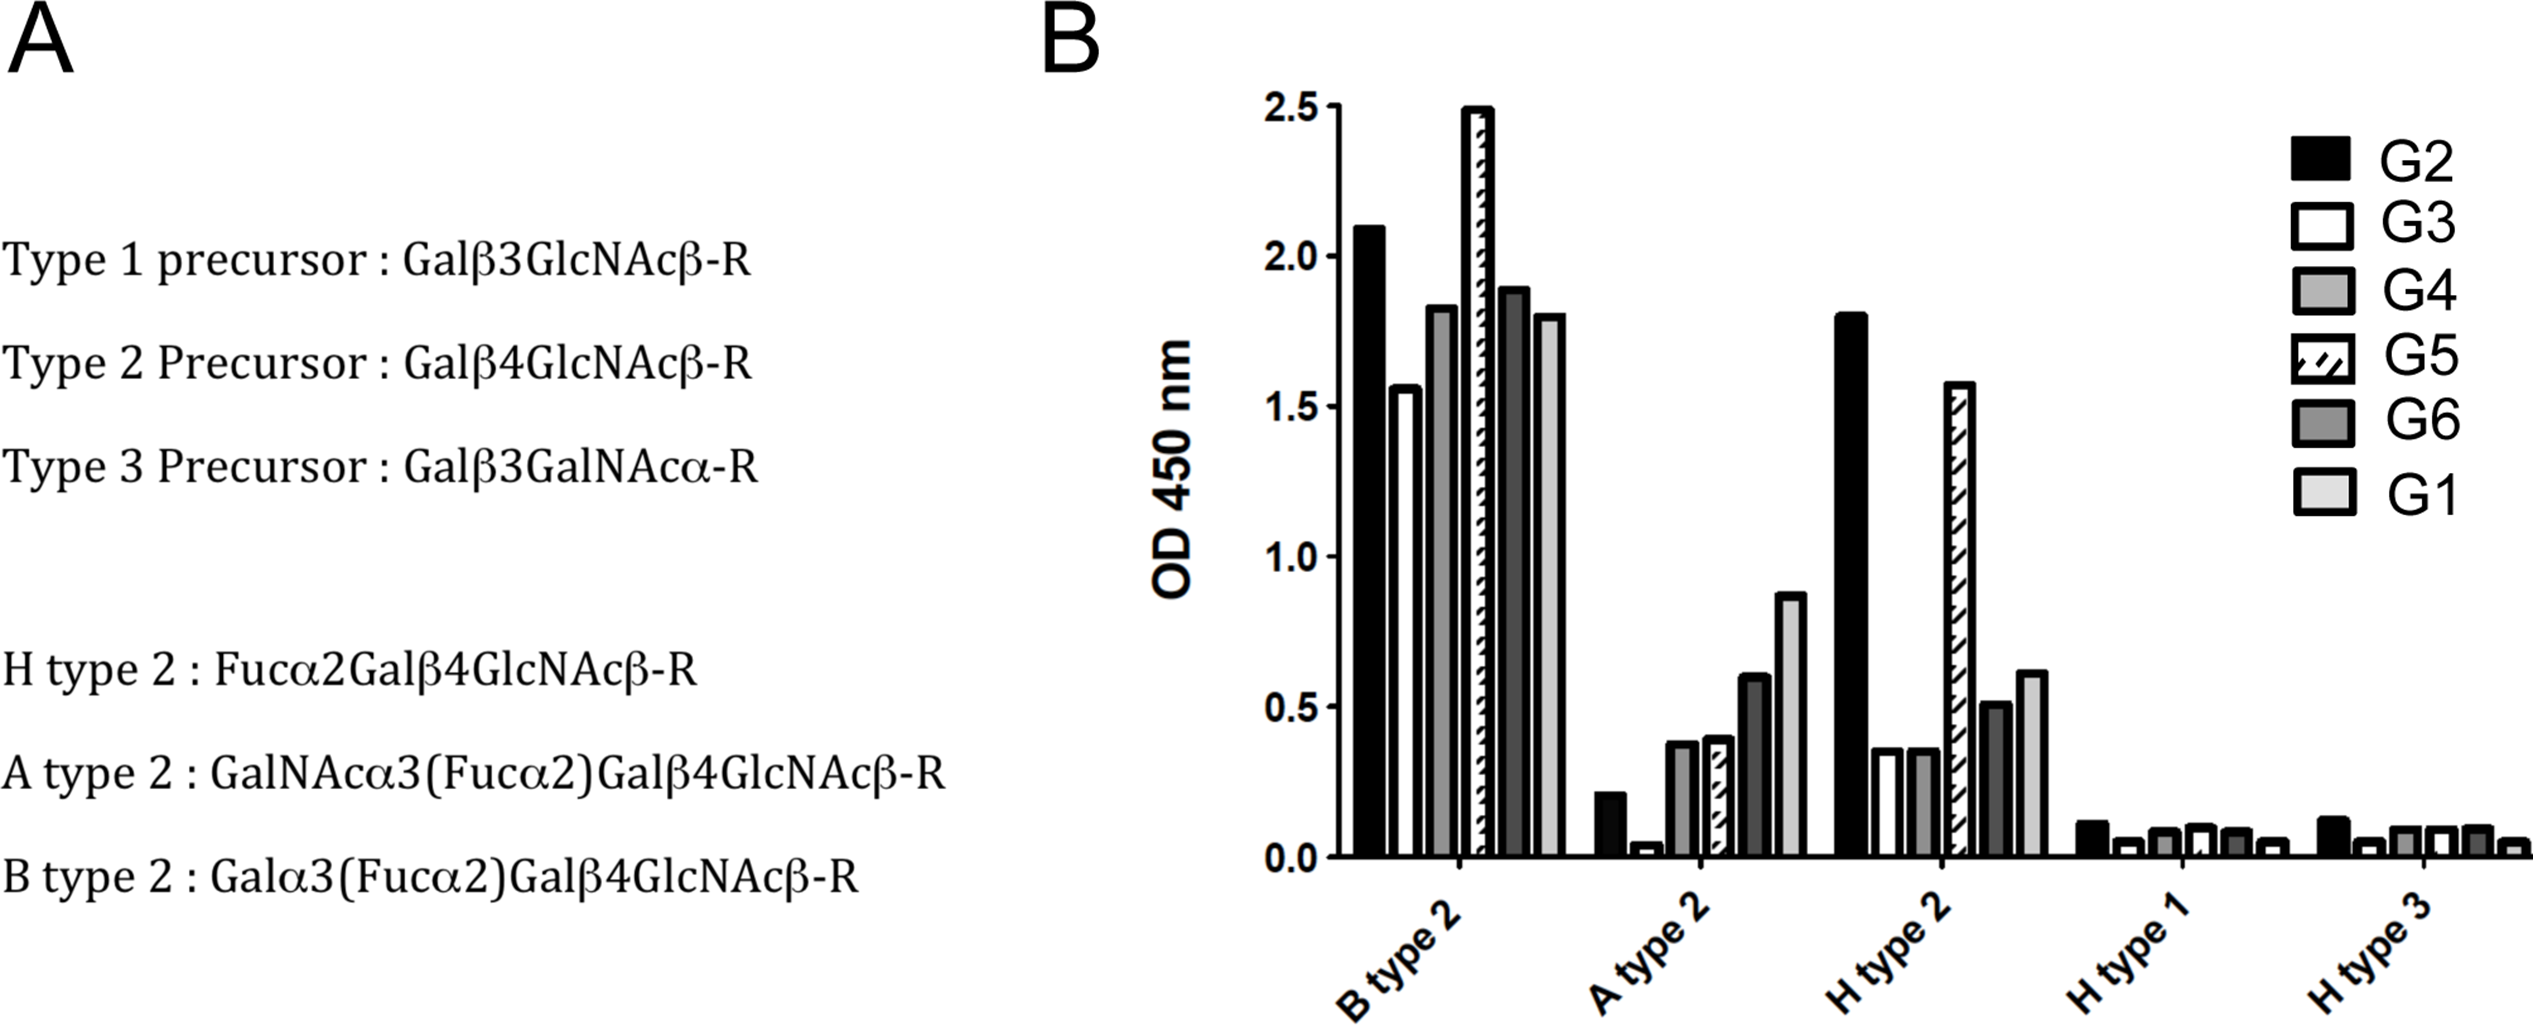 Binding of RHDV strains to immobilized synthetic oligosaccharides.